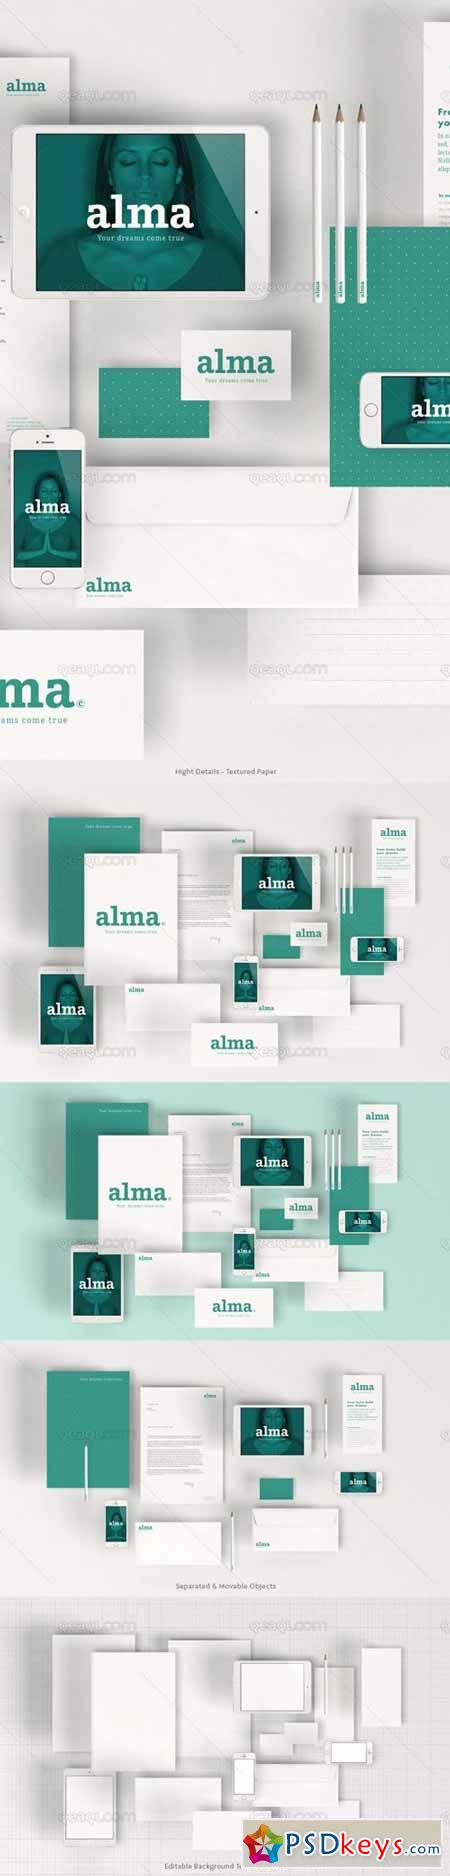 stationary mock up 100162 free download photoshop vector stock